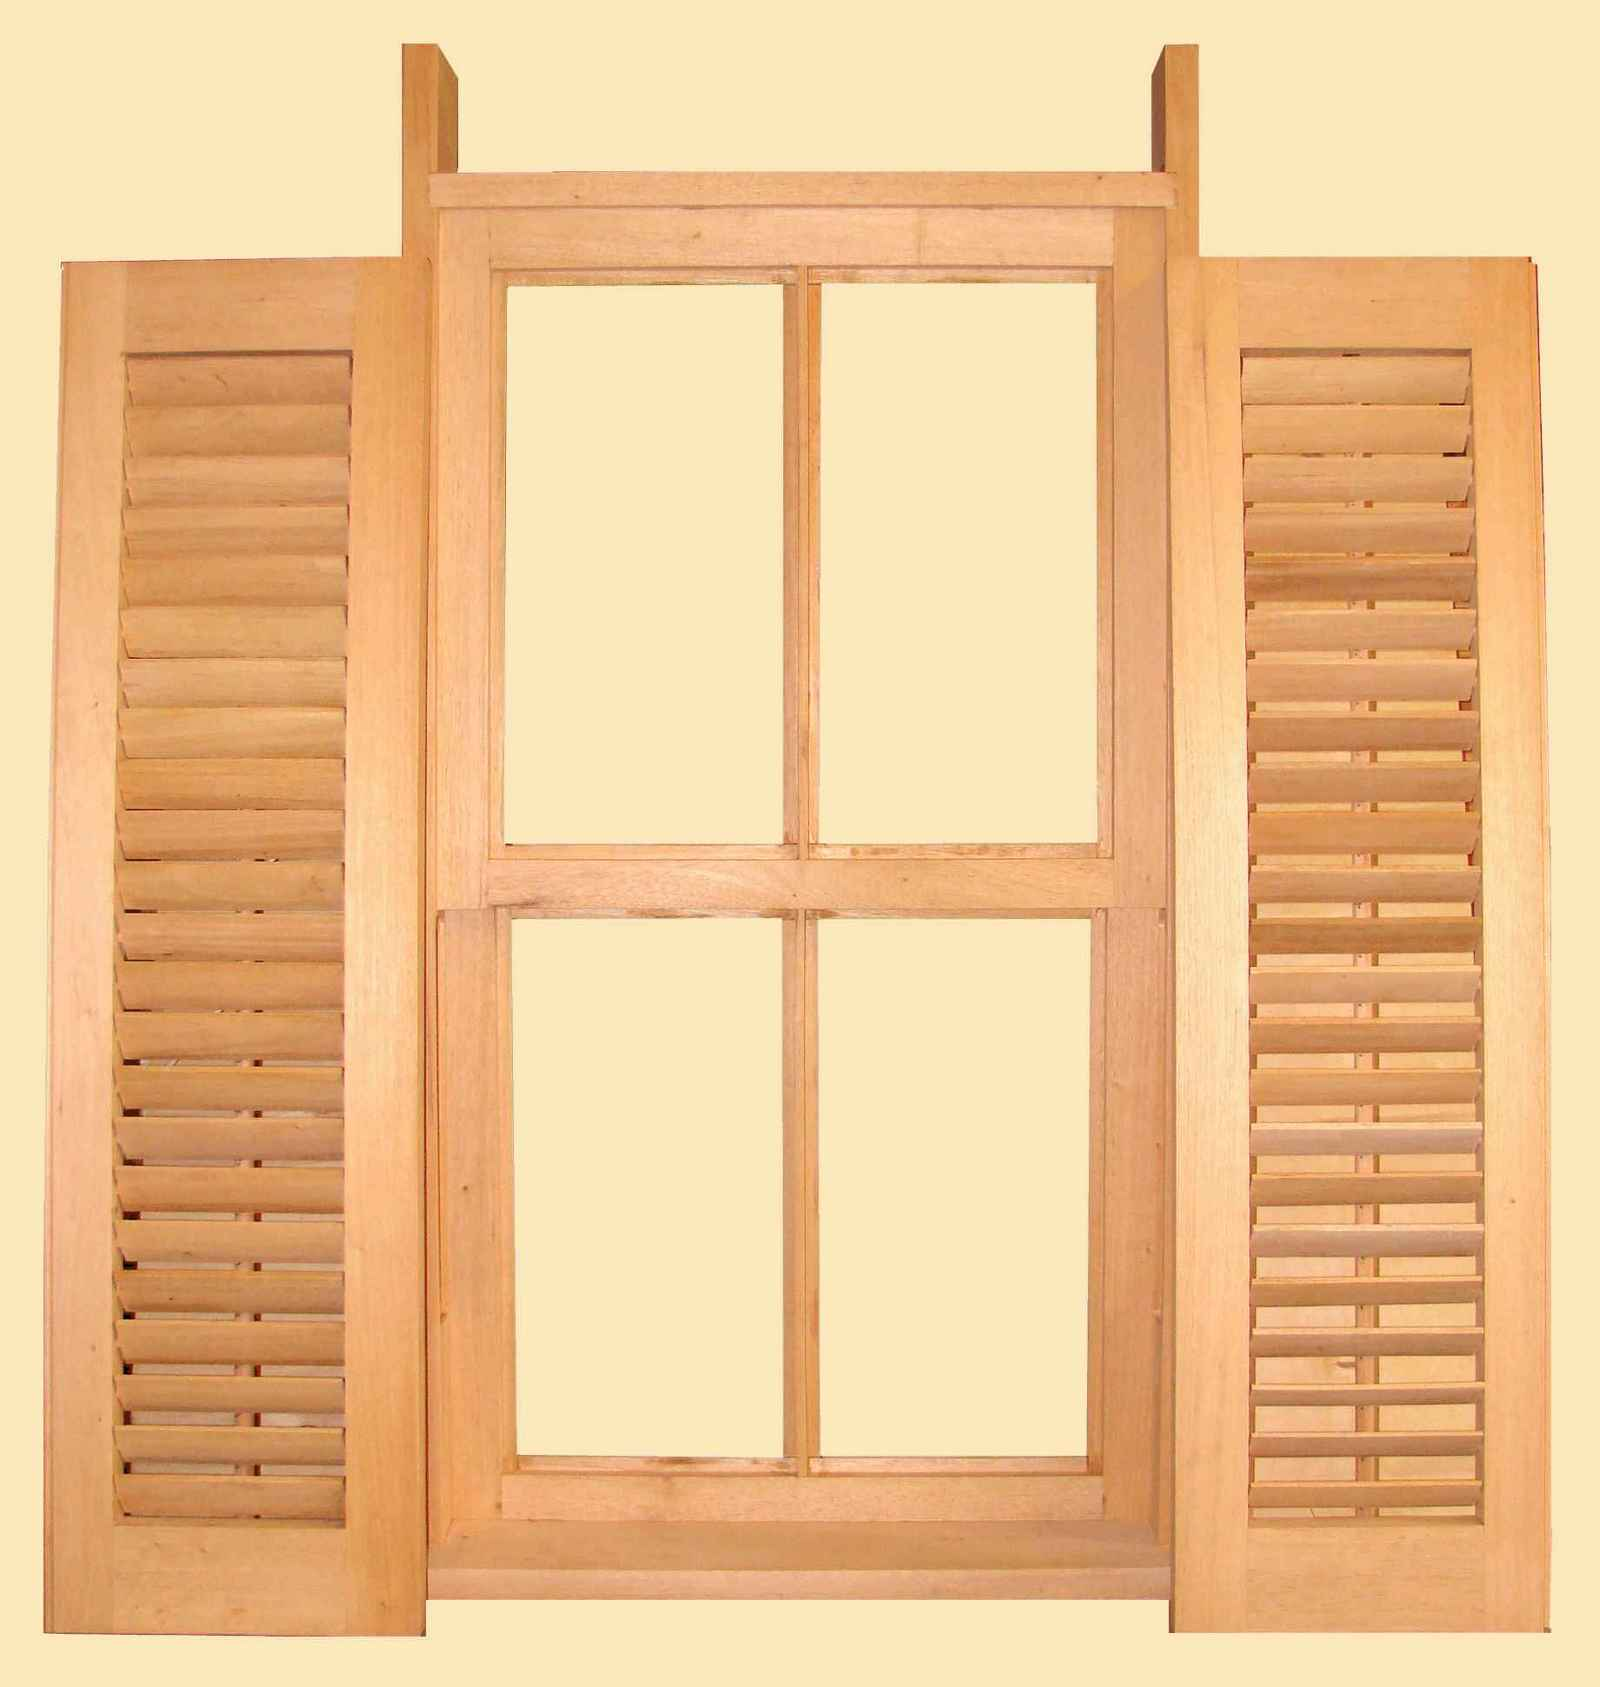 Solid Pine Window Frames for Outdoor